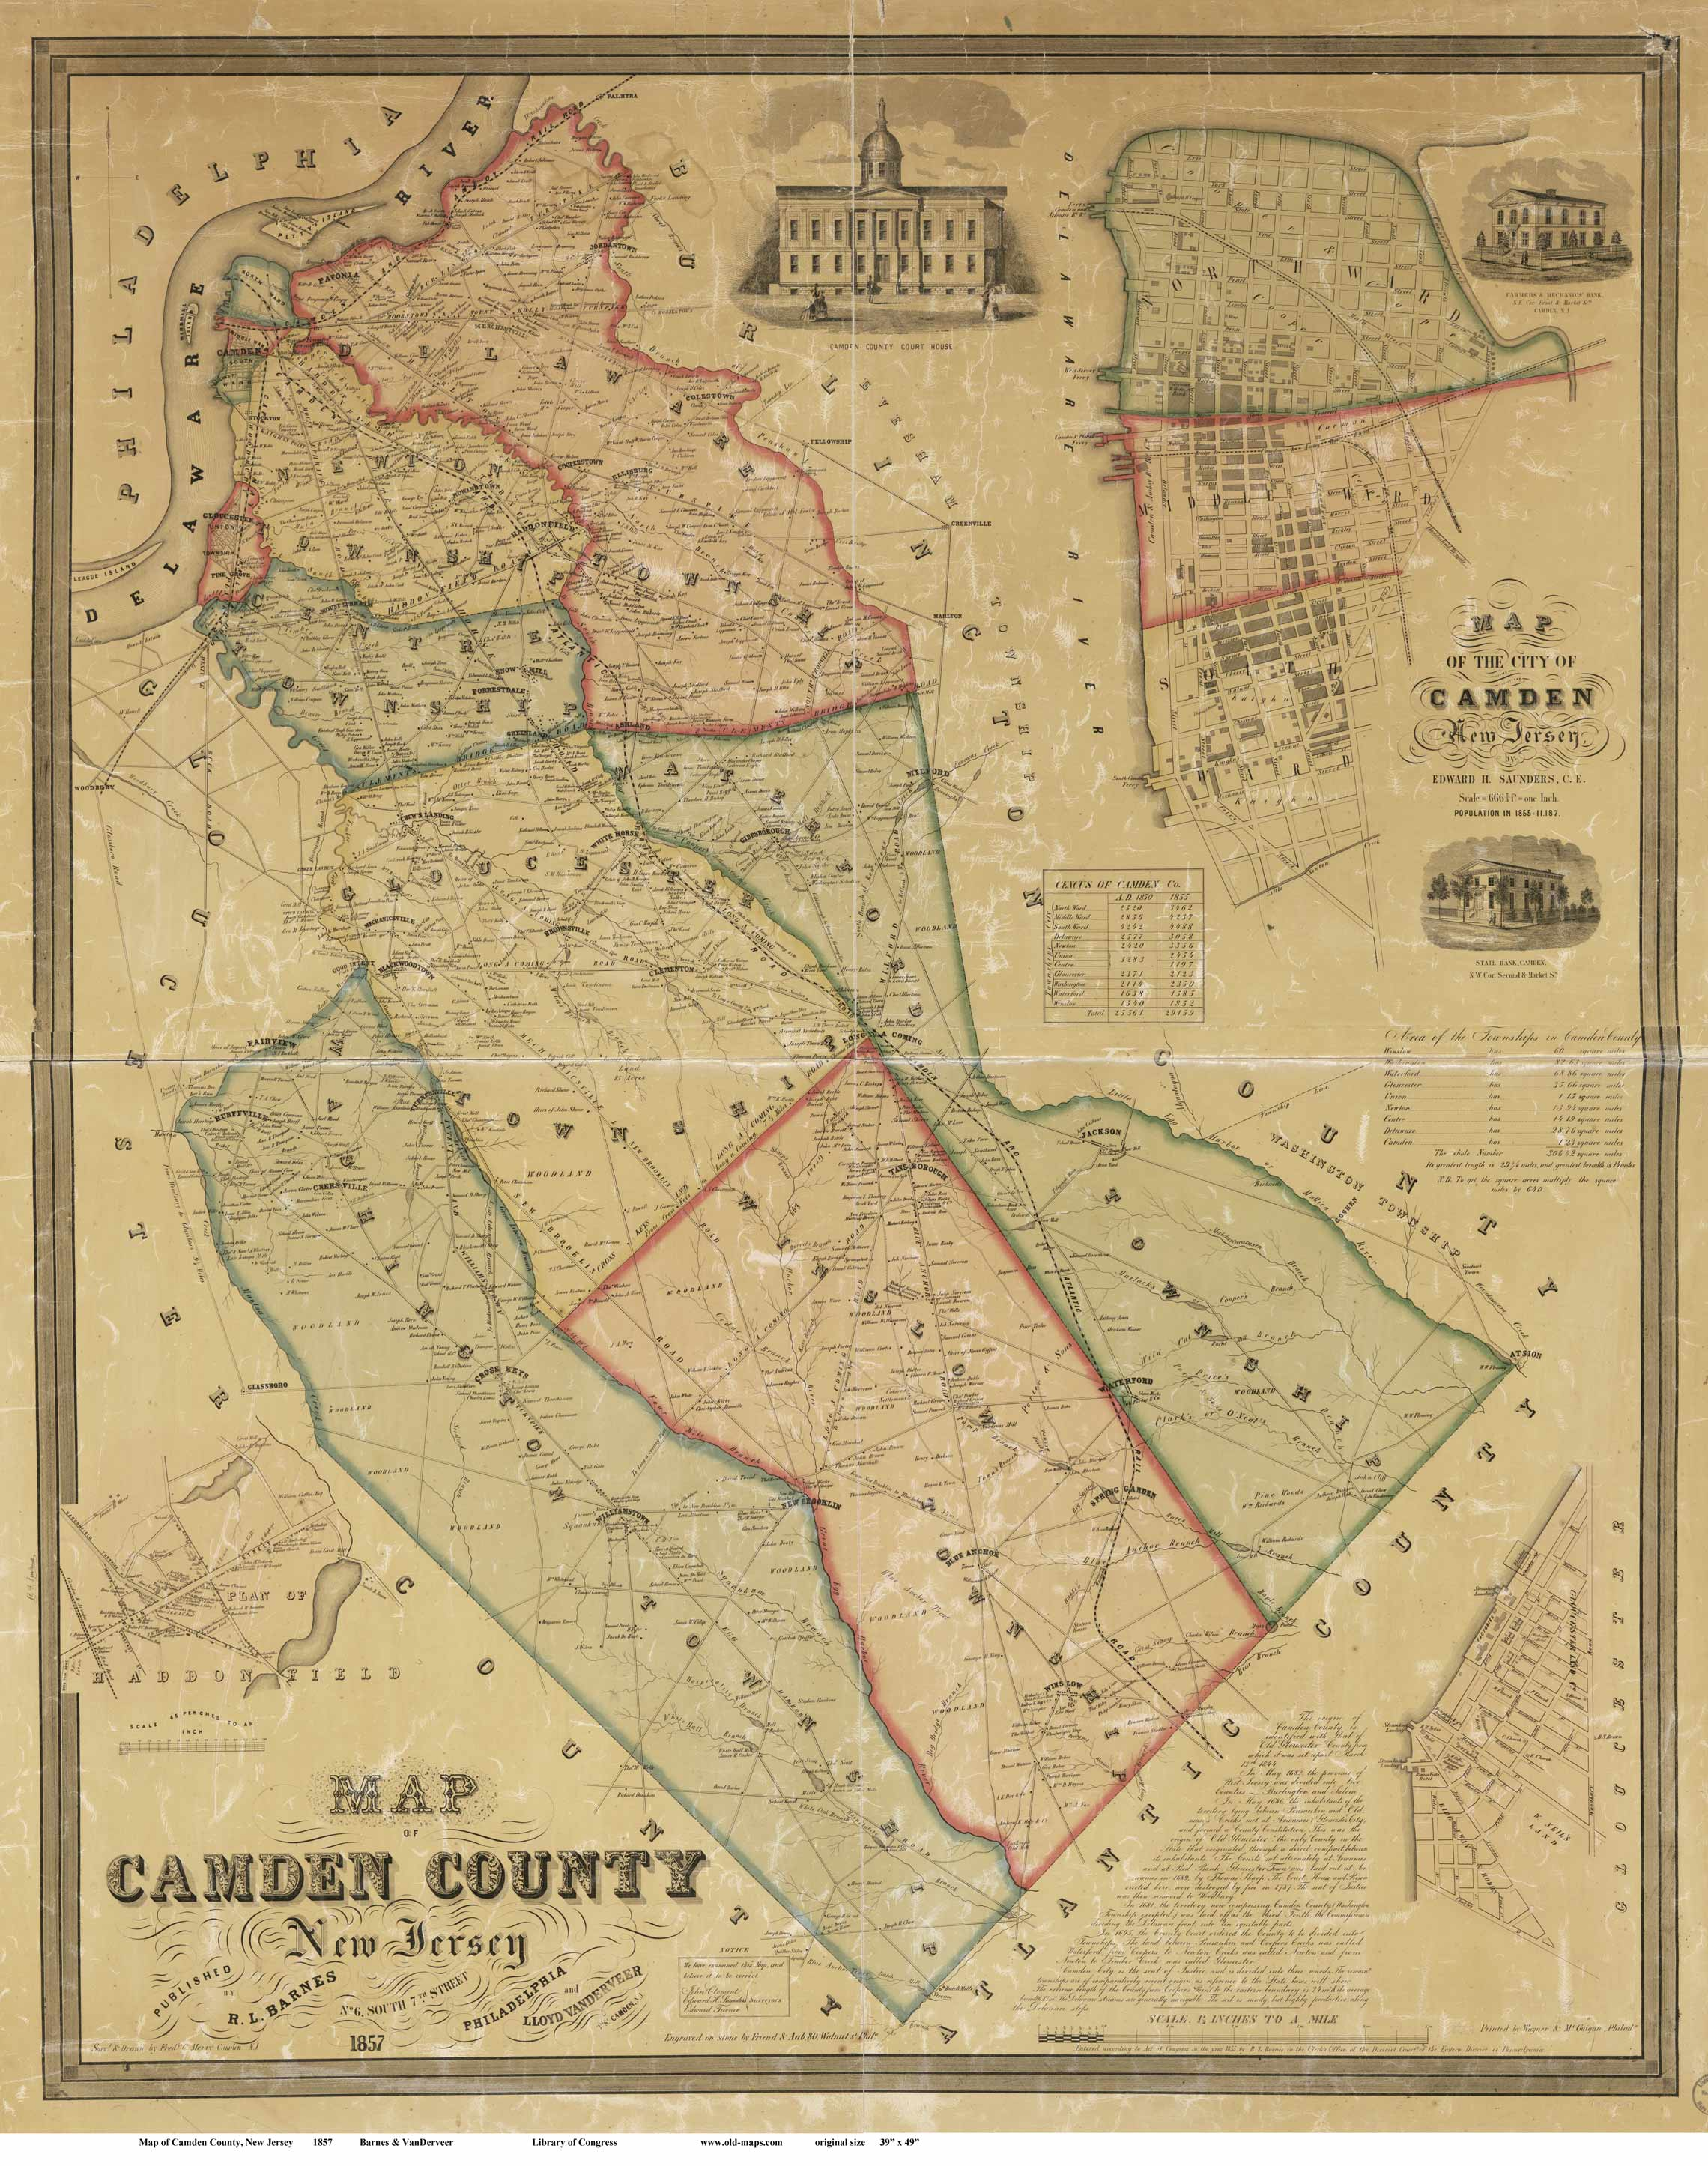 New Jersey County Maps - County map of new jersey